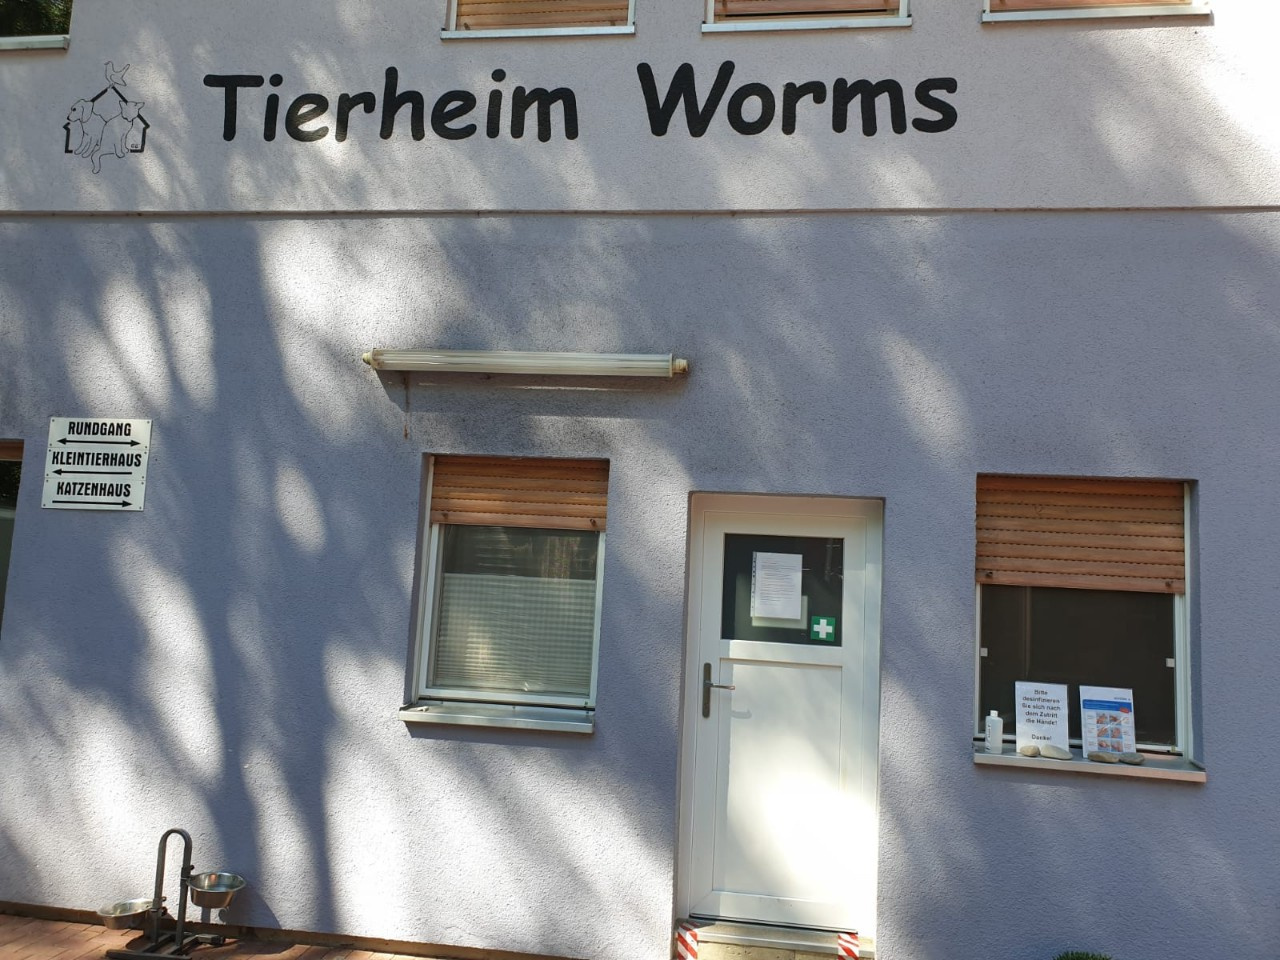 Tierheim Worms # (7)